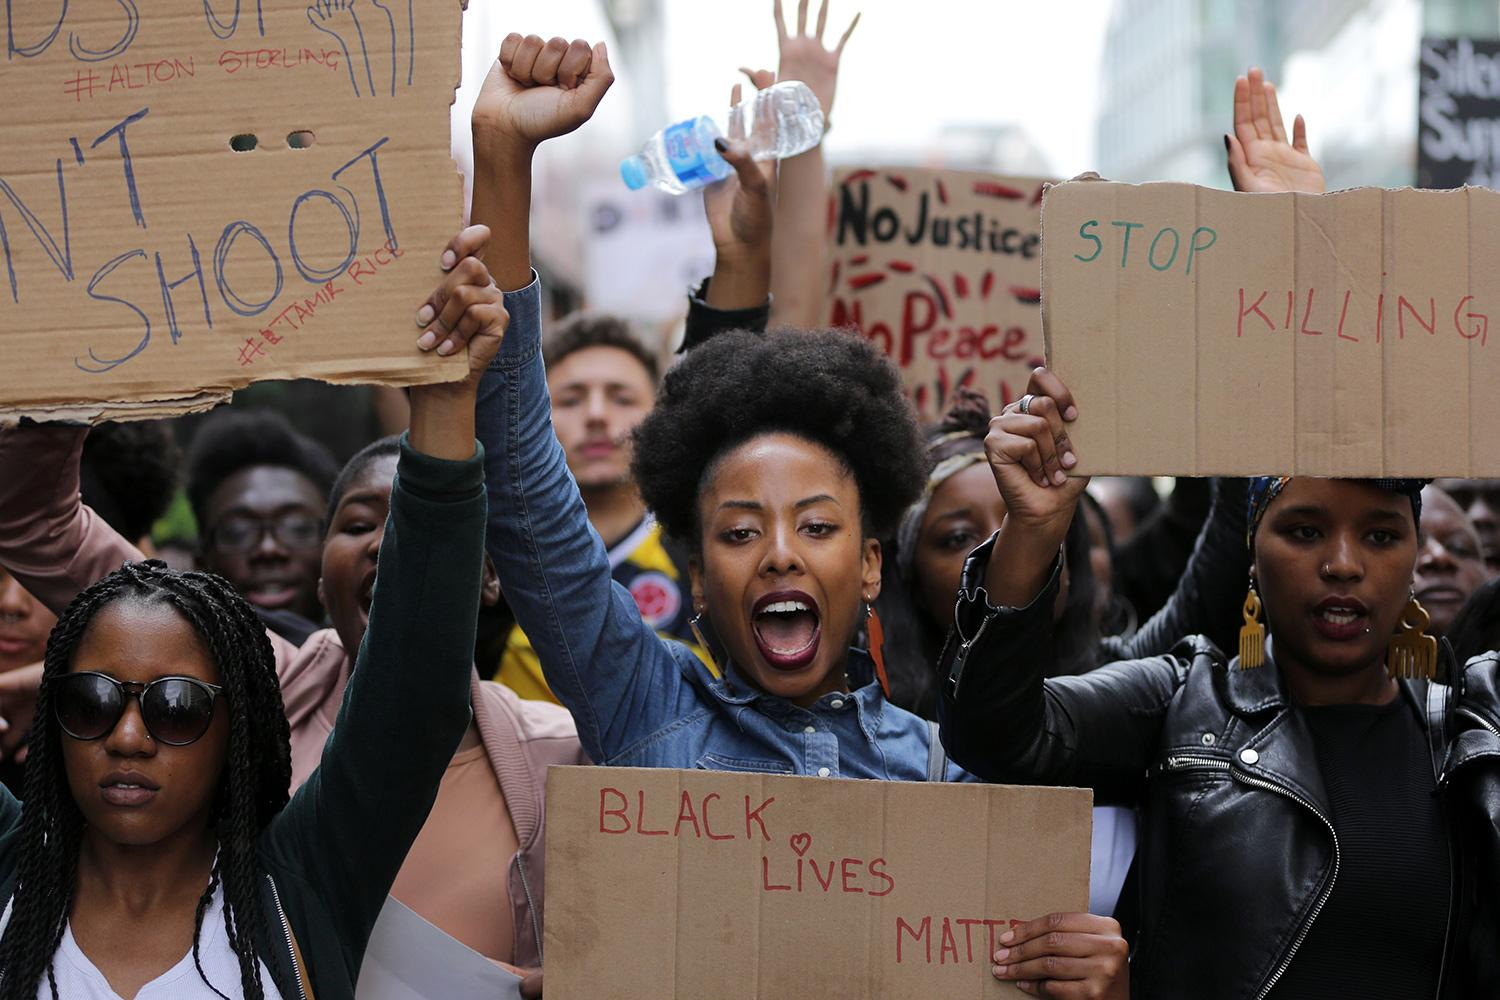 Demonstrators from the Black Lives Matter movement march through central London on July 10, 2016, during a demonstration against the killing of black men by police in the United States. The photo shows a huge crowd with people facing the camera with homemade signs, fists raised, and shouting slogans. AFP/Daniel Leal-Olivas via Getty Images